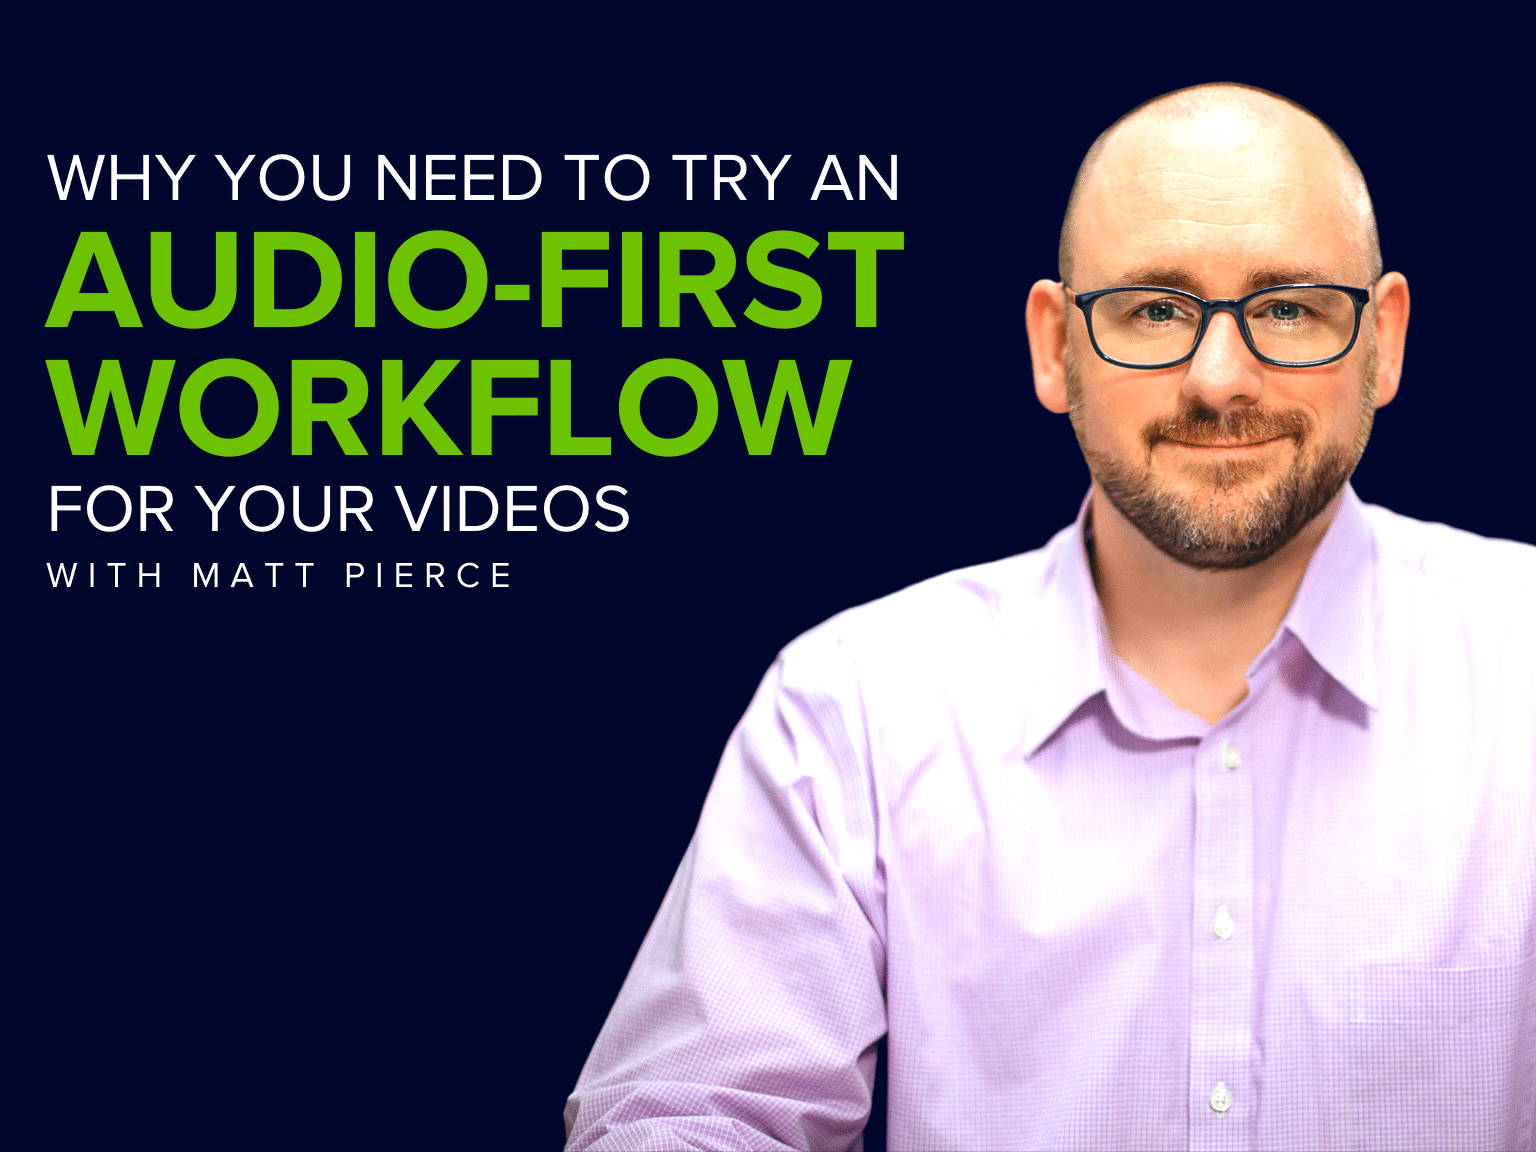 Why You Need to Try an Audio-First Workflow for Your Videos